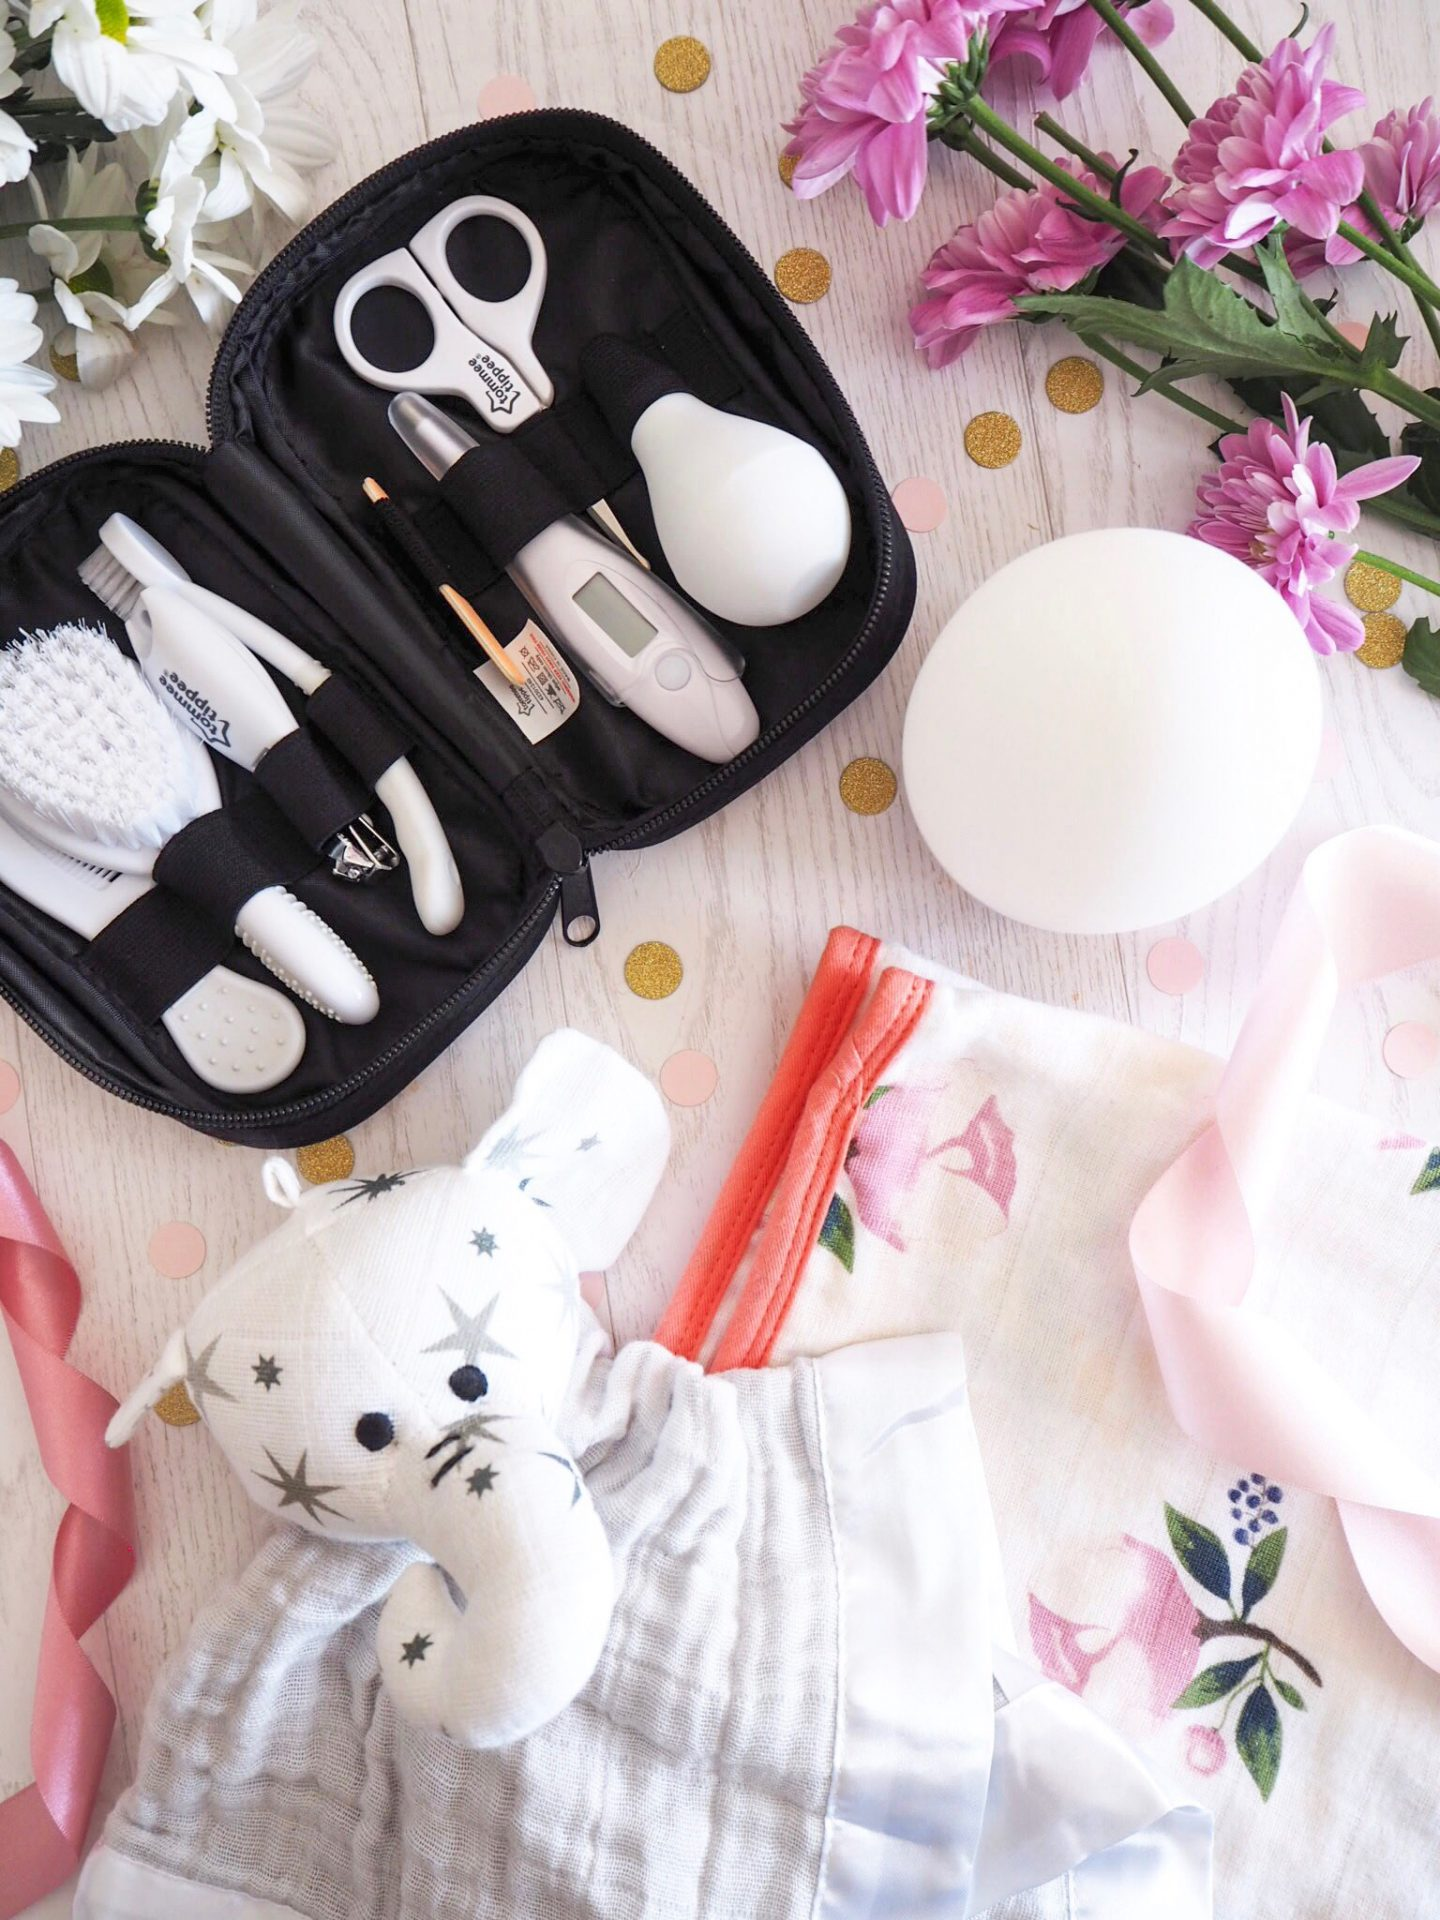 Baby accessories haul Aden + Anais tommee tippee little unicorn Gro egg the Gro company